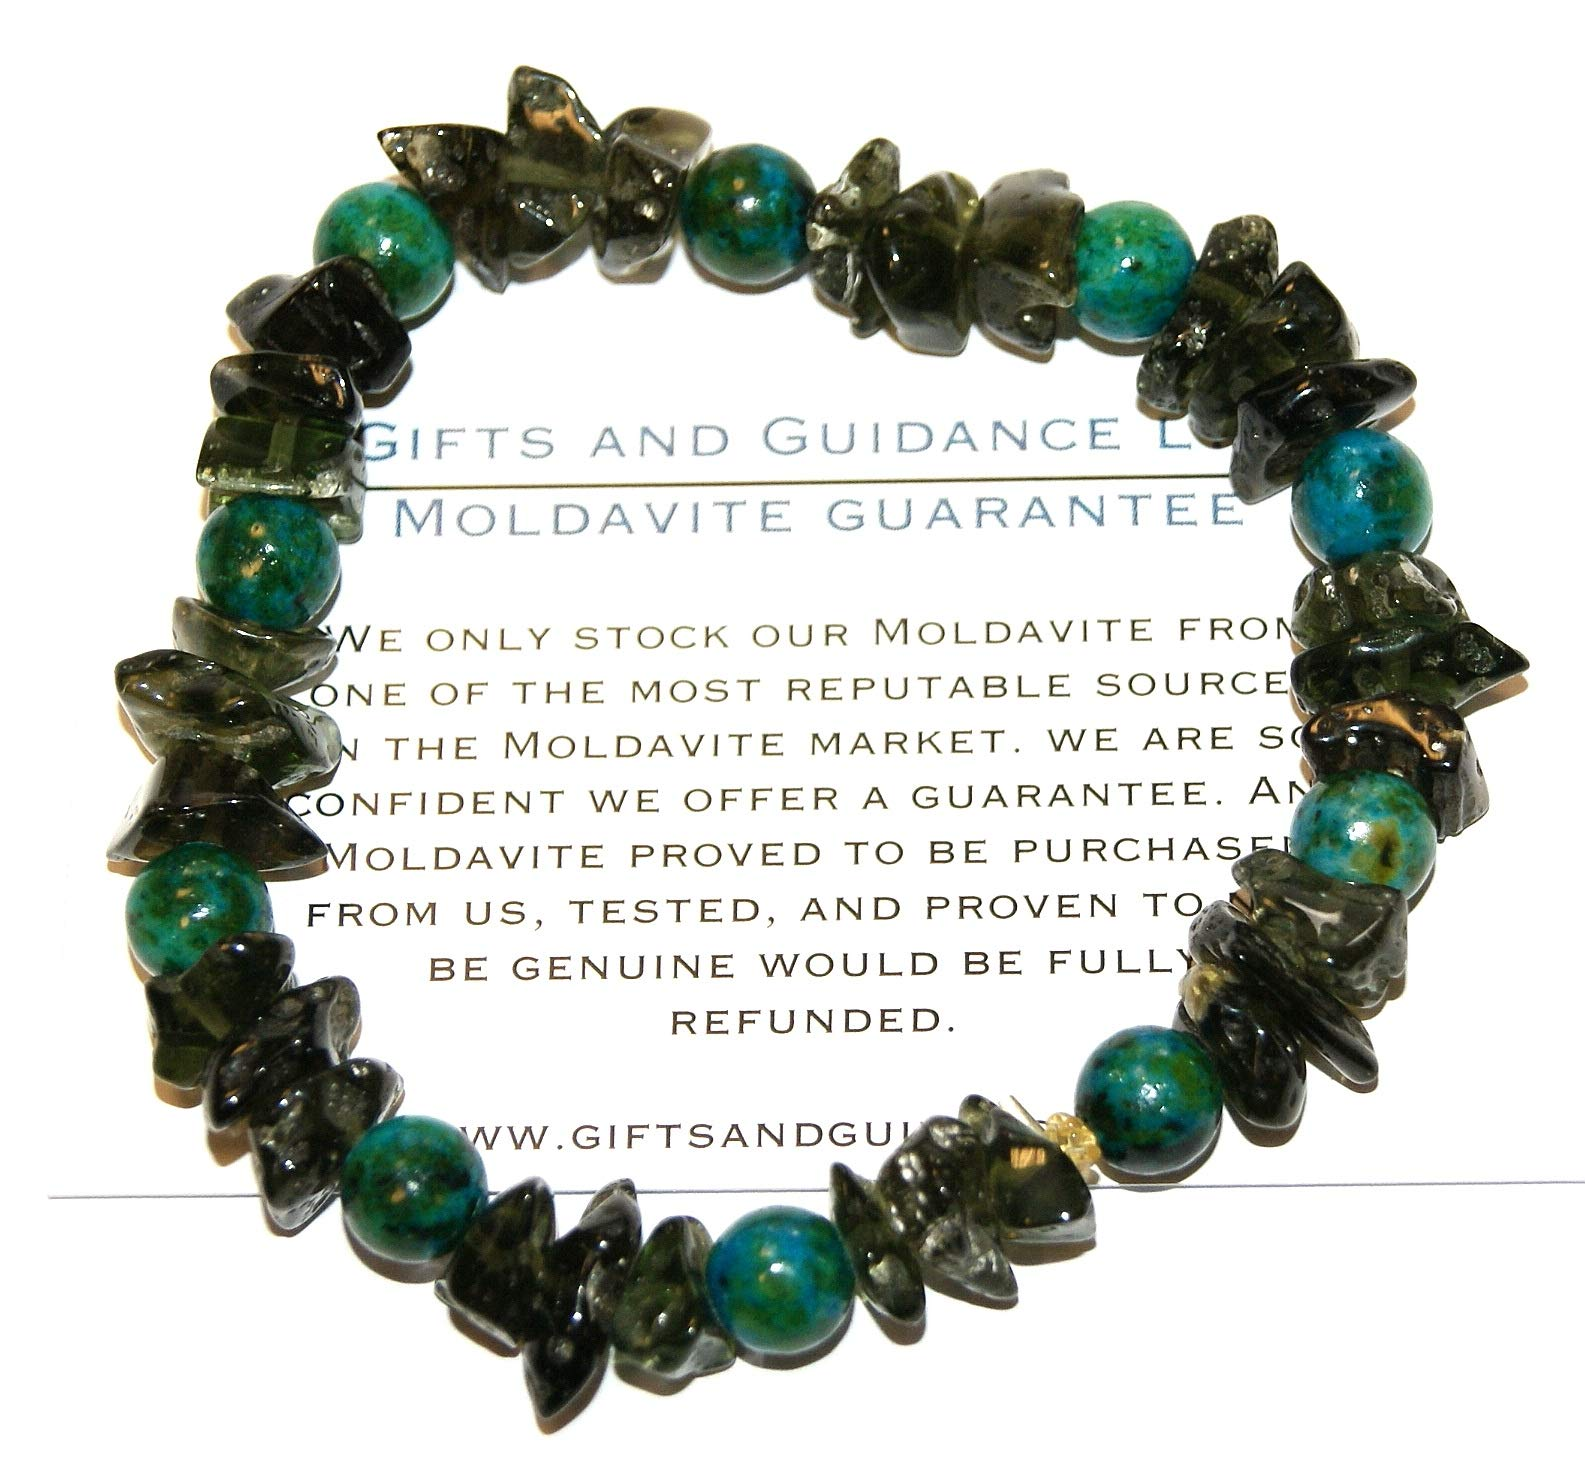 Moldavite and Eilat Bracelet High Vibration Crystals Polished 24 Grams by Gifts and Guidance